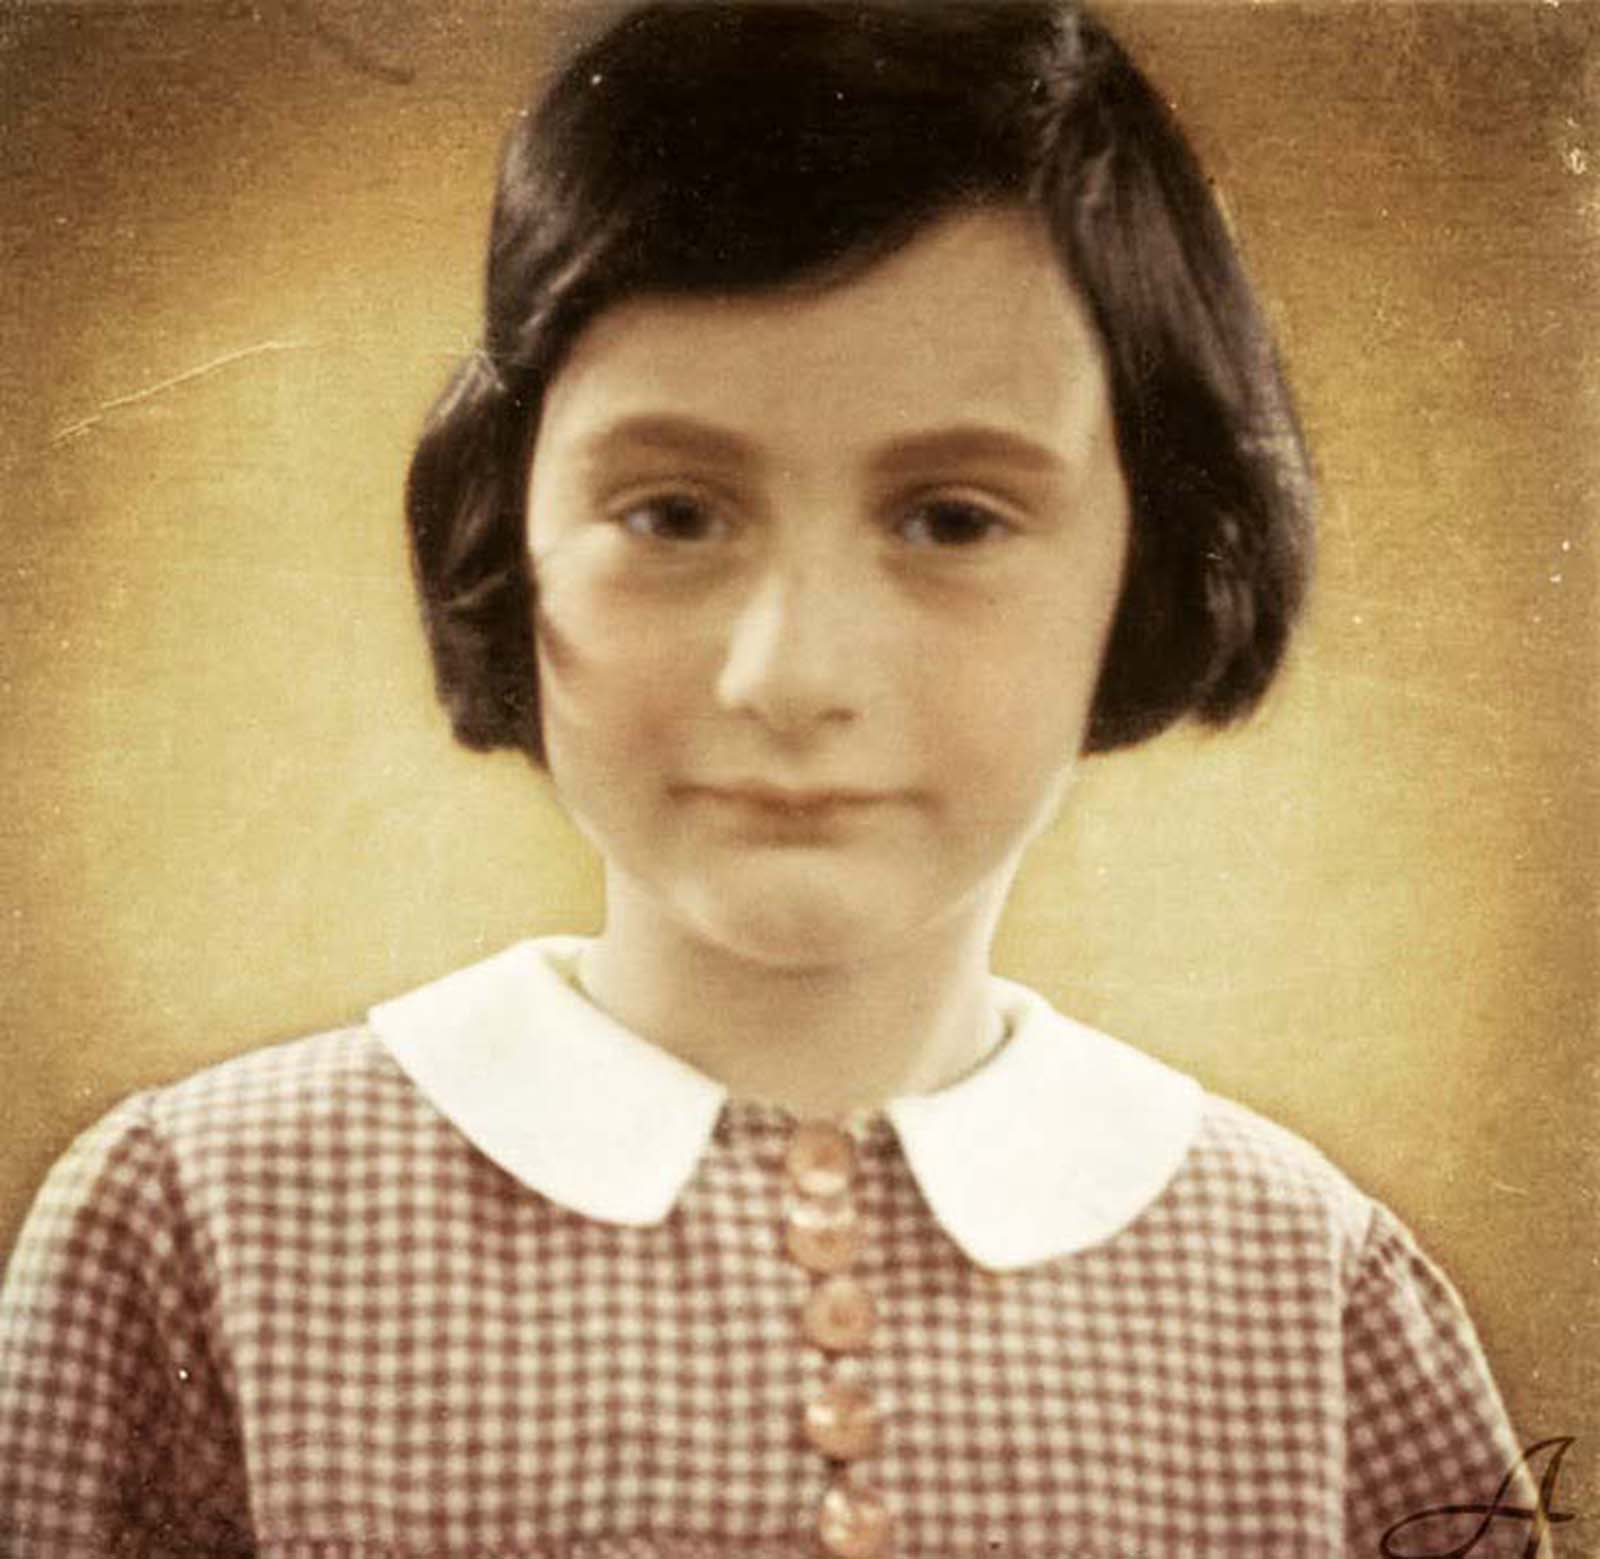 Anne Frank, undated.